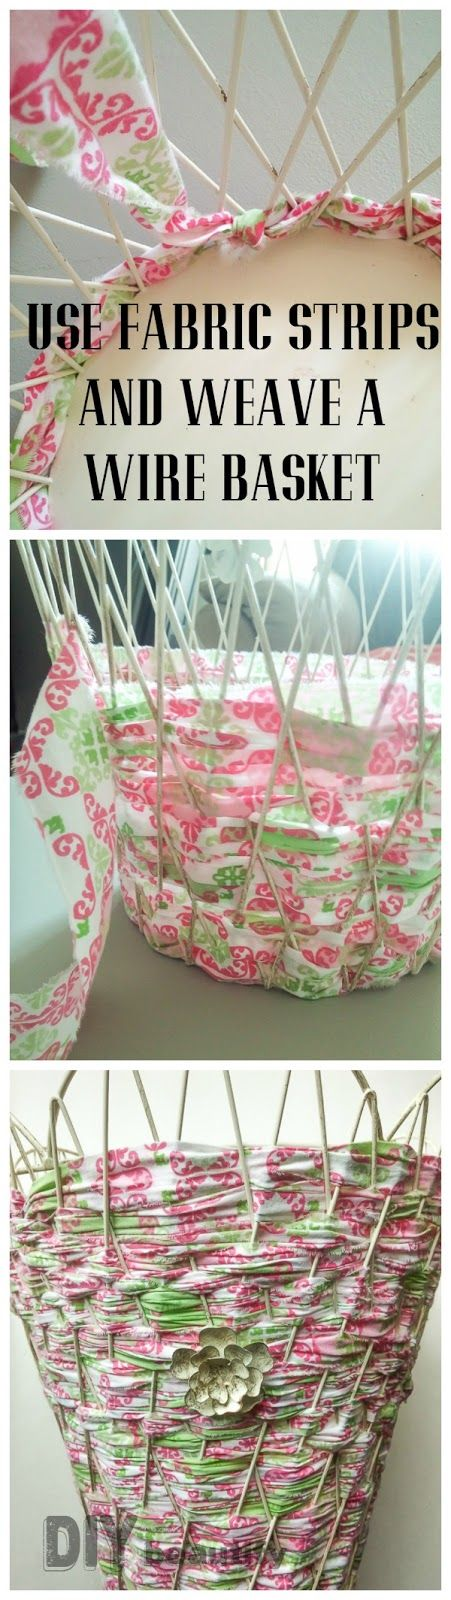 Easy woven wire basket or trash can using fabric strips!